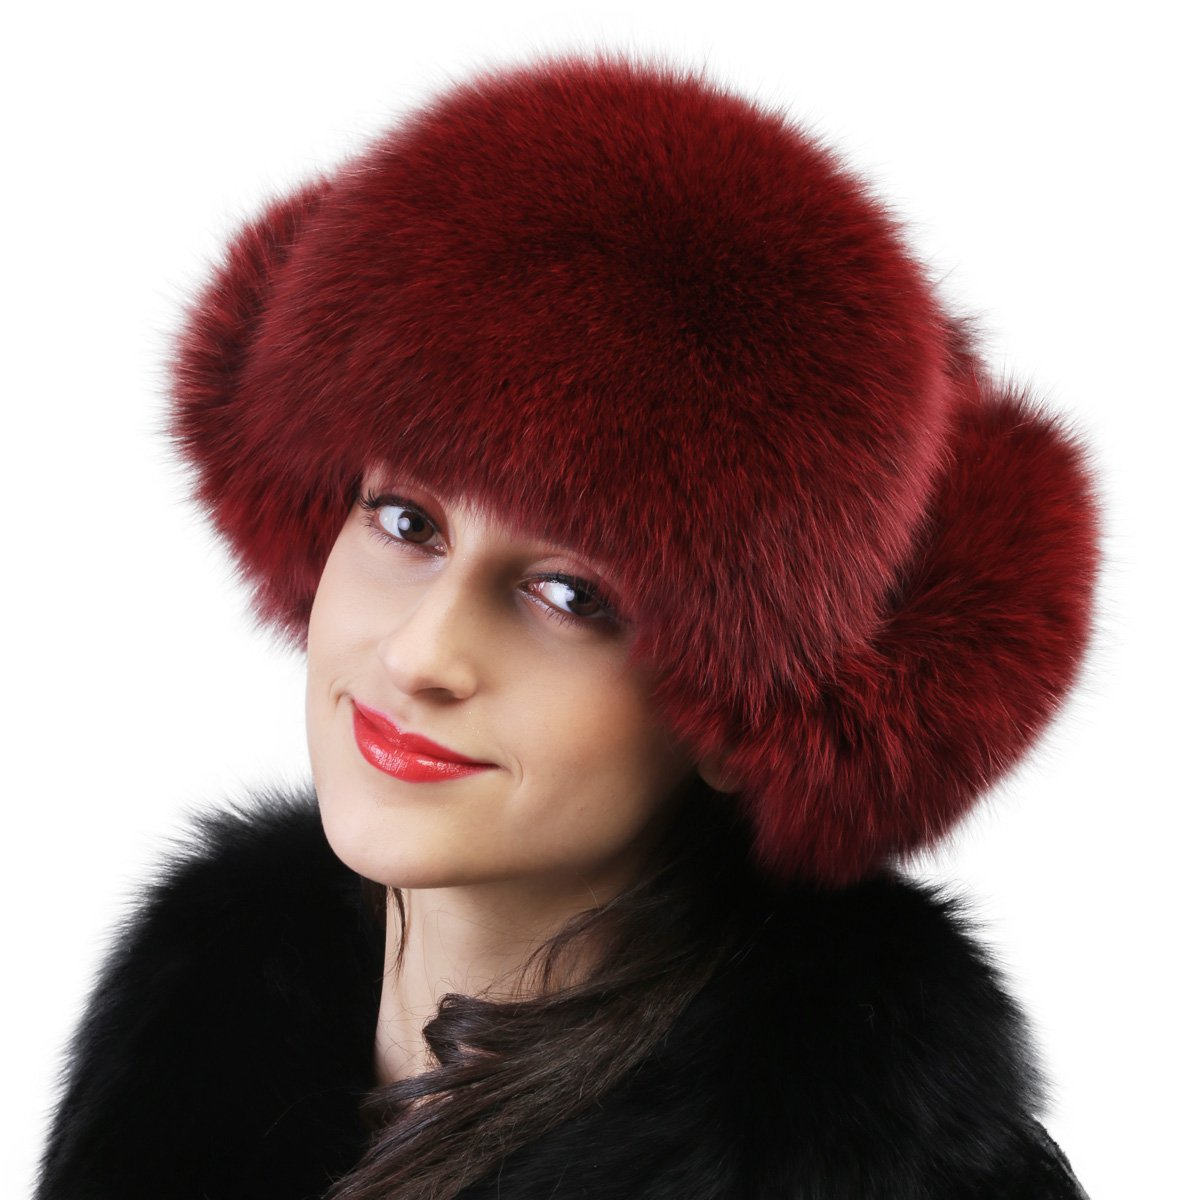 Mandy's Women's Autumn Winter Warm Below Zero Show Ball Real Fur Caps Lady's Fox Fur Hats (One size fit most (20''-24''), red)